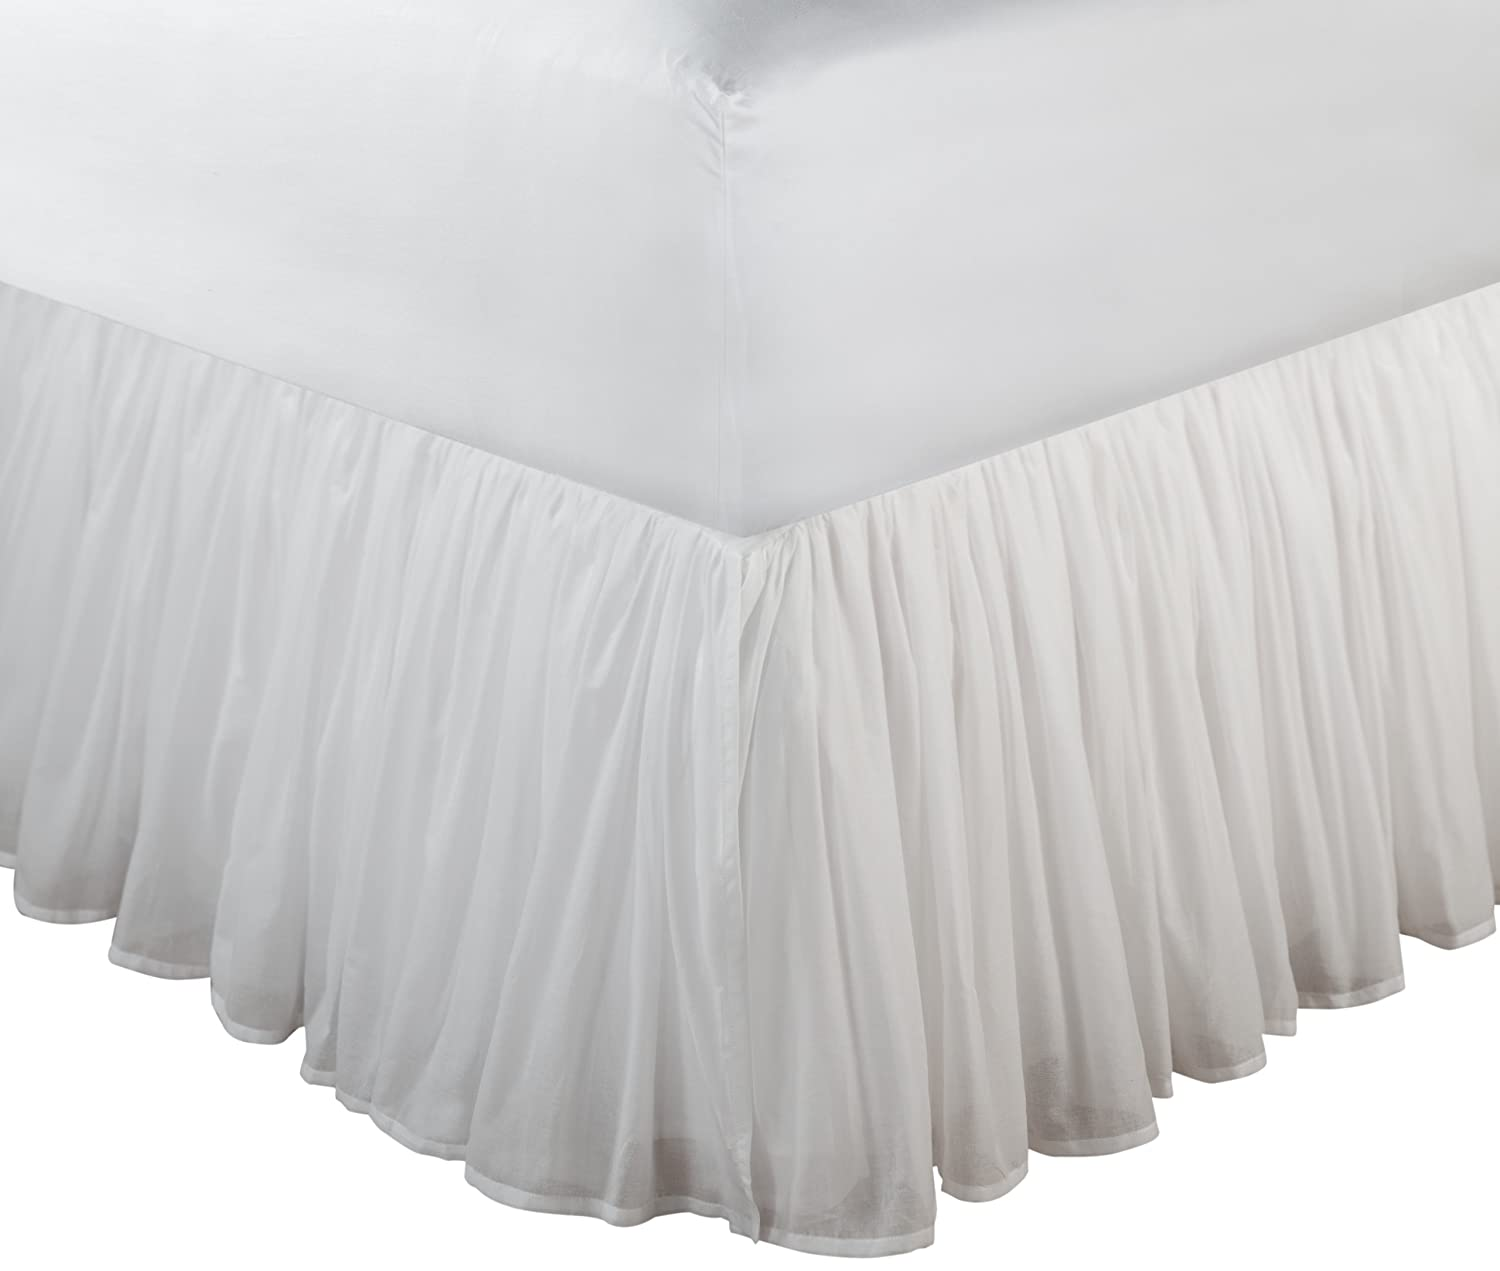 Greenland Home Fashions Cotton Voile 18 Inch White Bed Skirt, Queen by Greenland Home